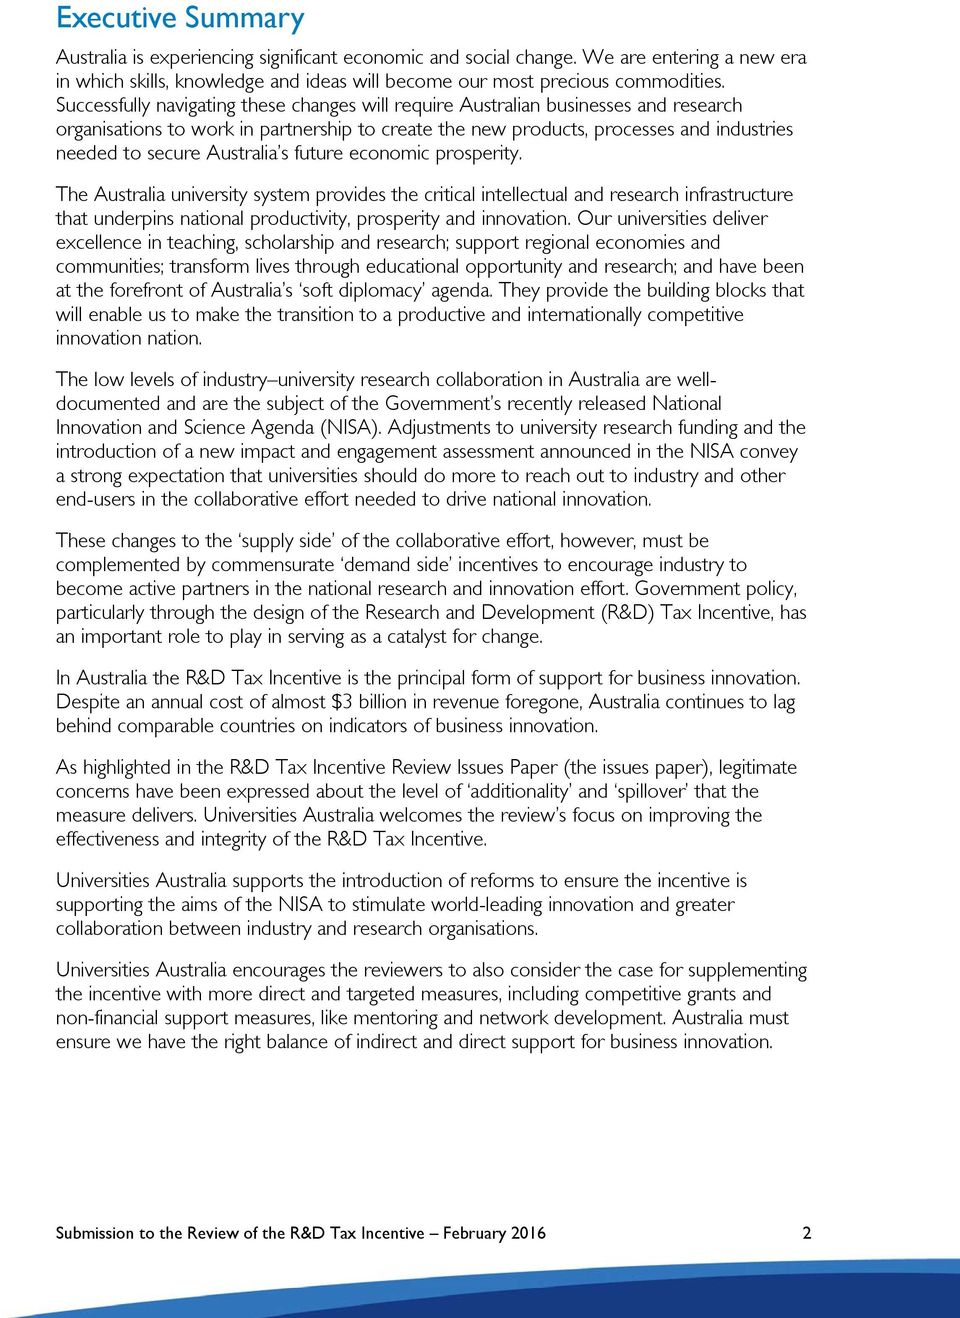 Australia s future economic prosperity. The Australia university system provides the critical intellectual and research infrastructure that underpins national productivity, prosperity and innovation.